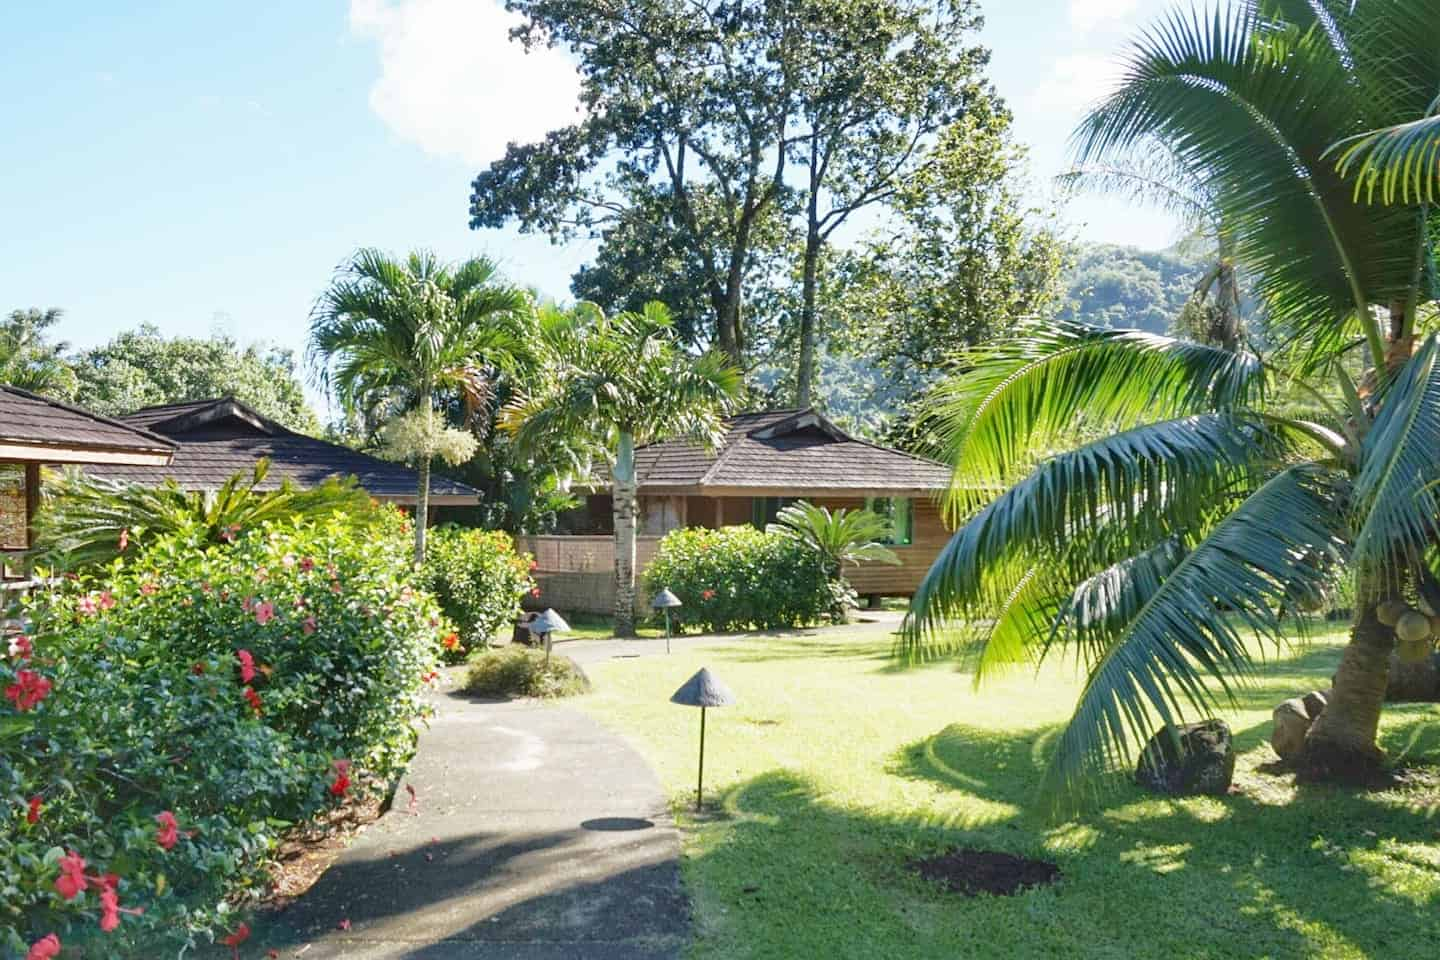 Image of Airbnb rental in Moorea, French Polynesia